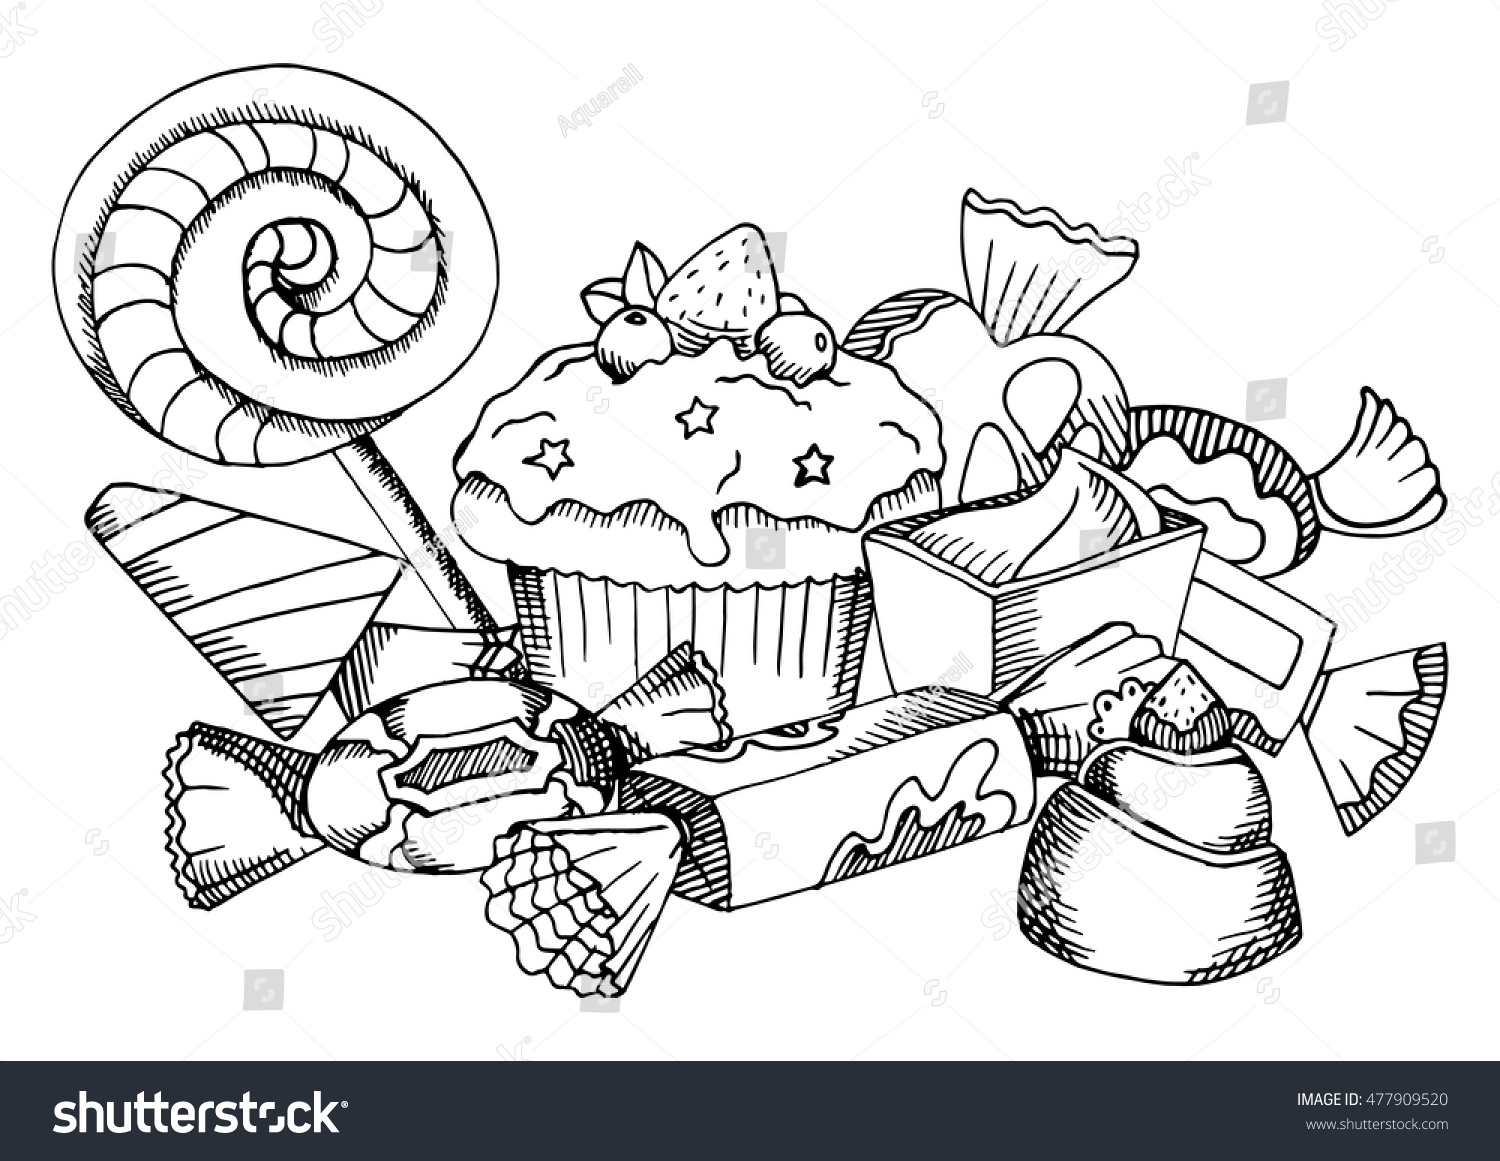 vector black and white food coloring book page for children and adult sweets collection lollipop - Food Coloring Book